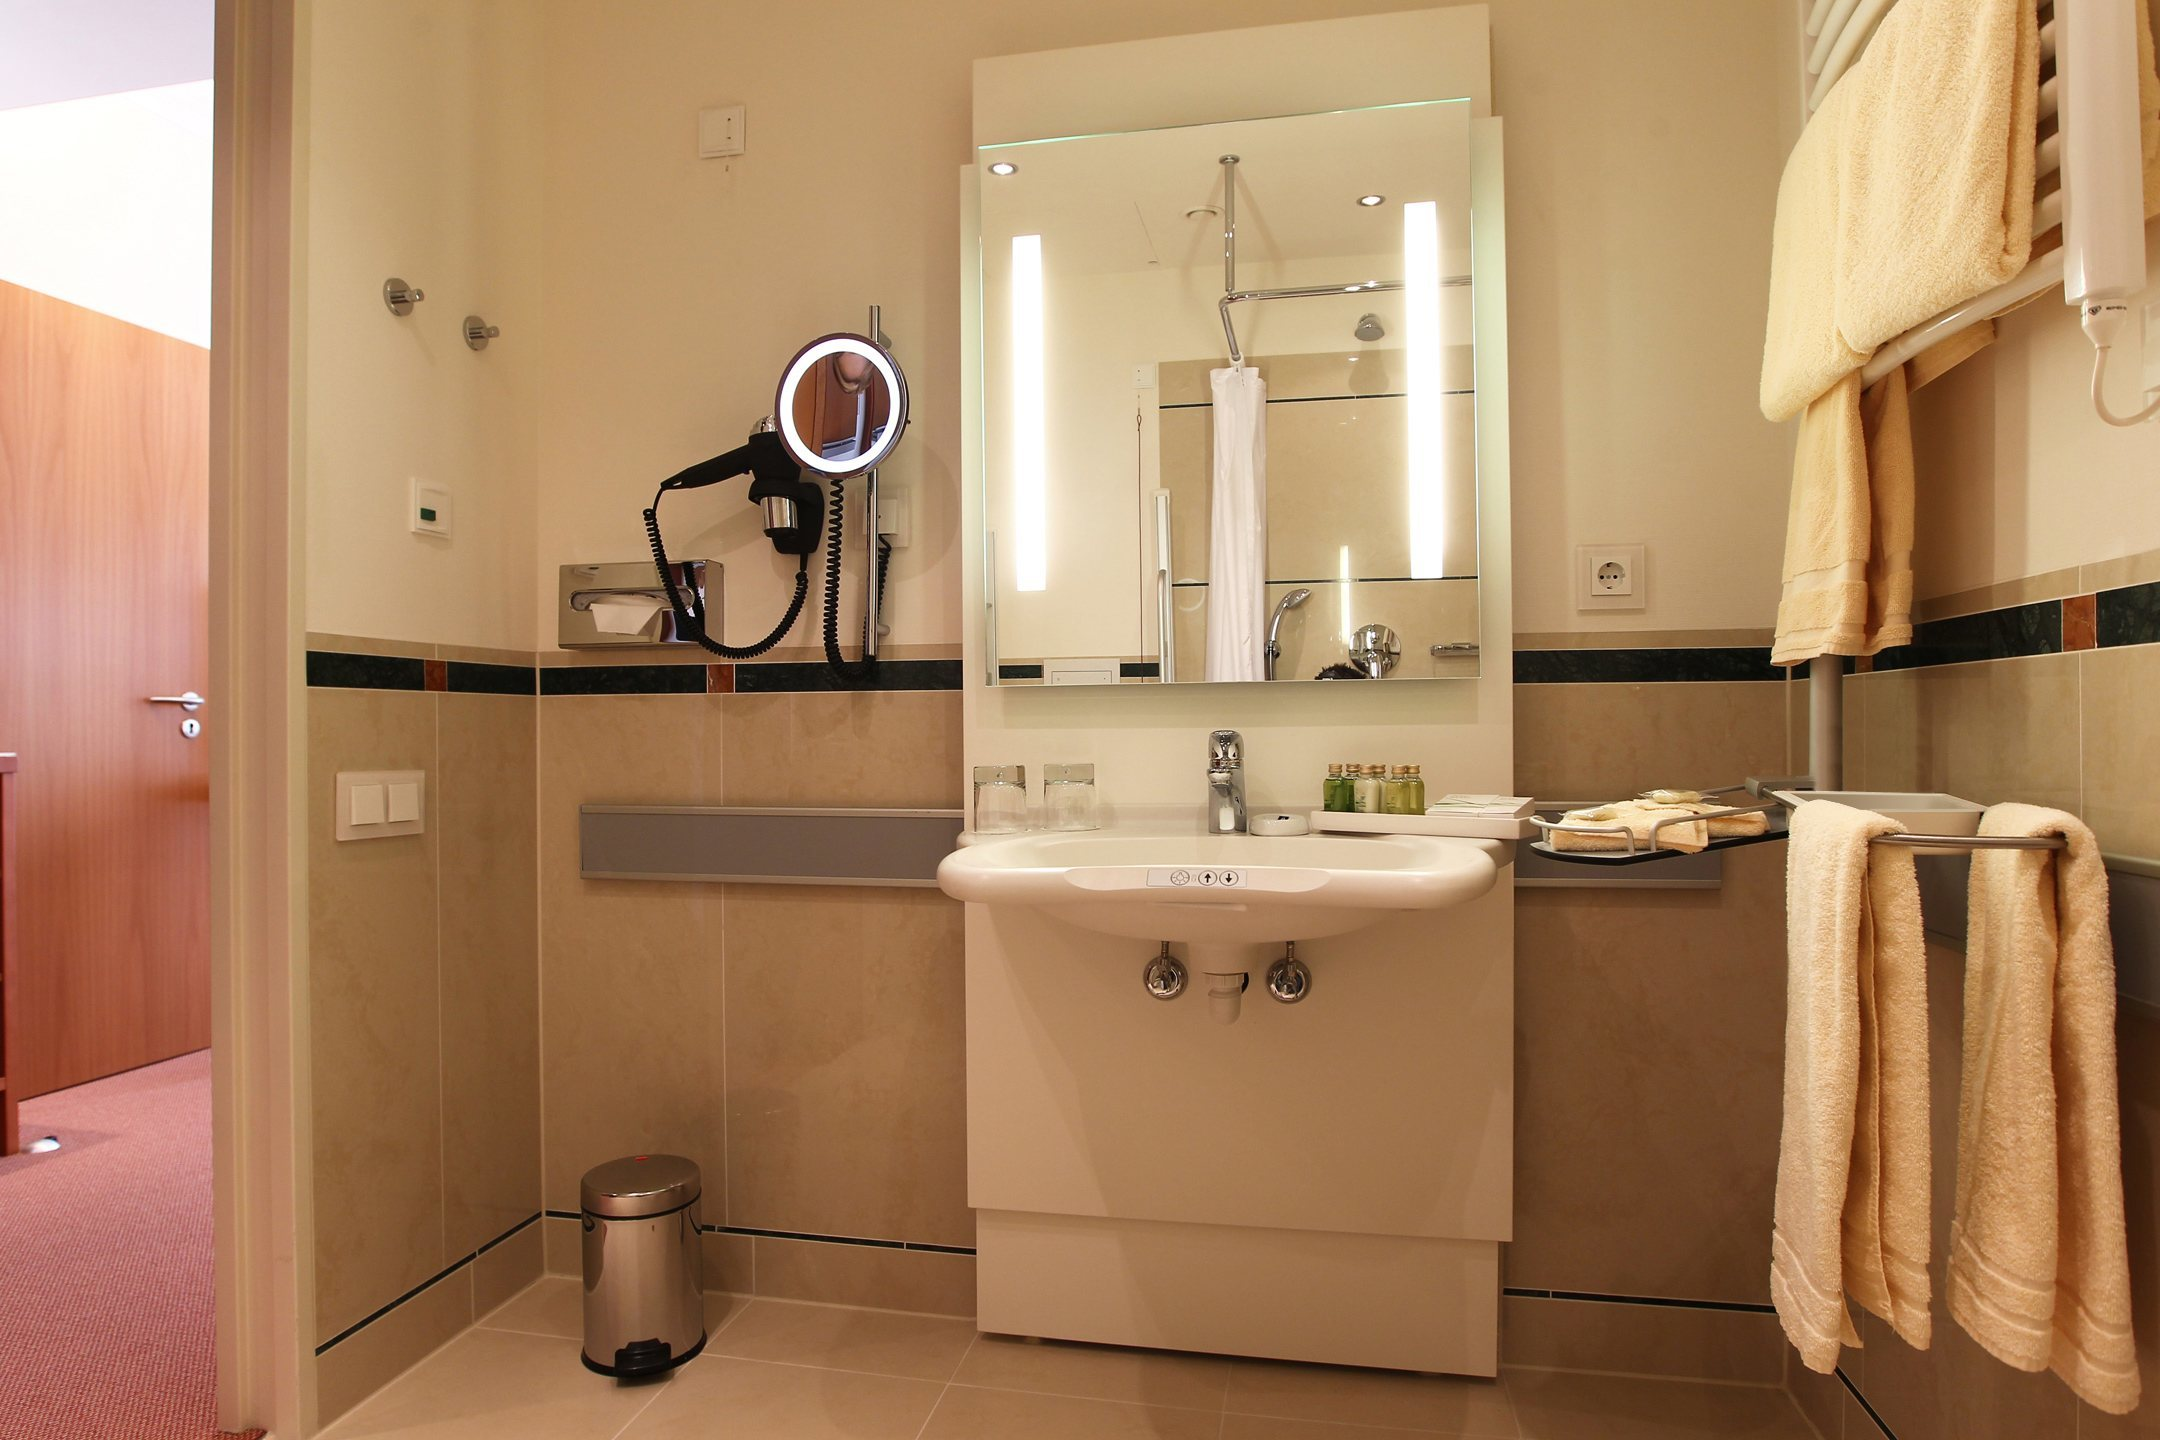 Bathroom of the barrier-free Standard Room with special control elements to ensure a barrier-free access in the ATLANTIC Hotel Wilhelmshaven